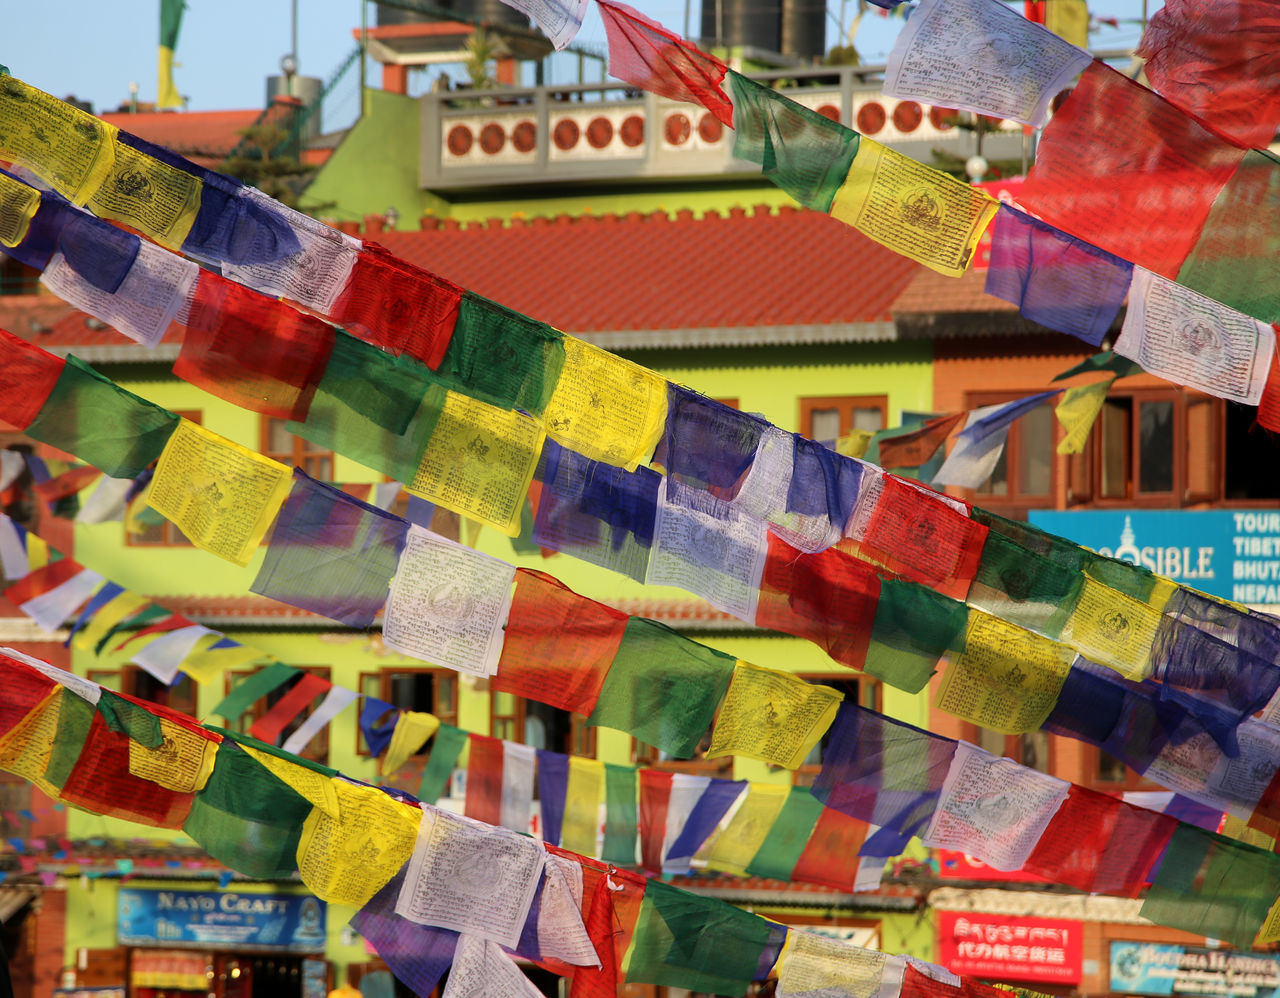 prayer flags in Kathmandu at Boudhanath temple. Nepali Way Nepalese Nepal Hinduism Pray Praying Prayer Flags  Prayer Flag Gebetsfahnen Gebetsfähnchen Temple - Building Swayambhunath Boudanath Stupa Bodnath nepal travel Colour Of Life Buddhist Symbolic Kathmandu Buddhism Culture BUDDHISM IS LOVE Kathmandu, Nepal Beauty In Architecture Kathmandu Valley Buddhist Nepal Travel Buddhist Temple